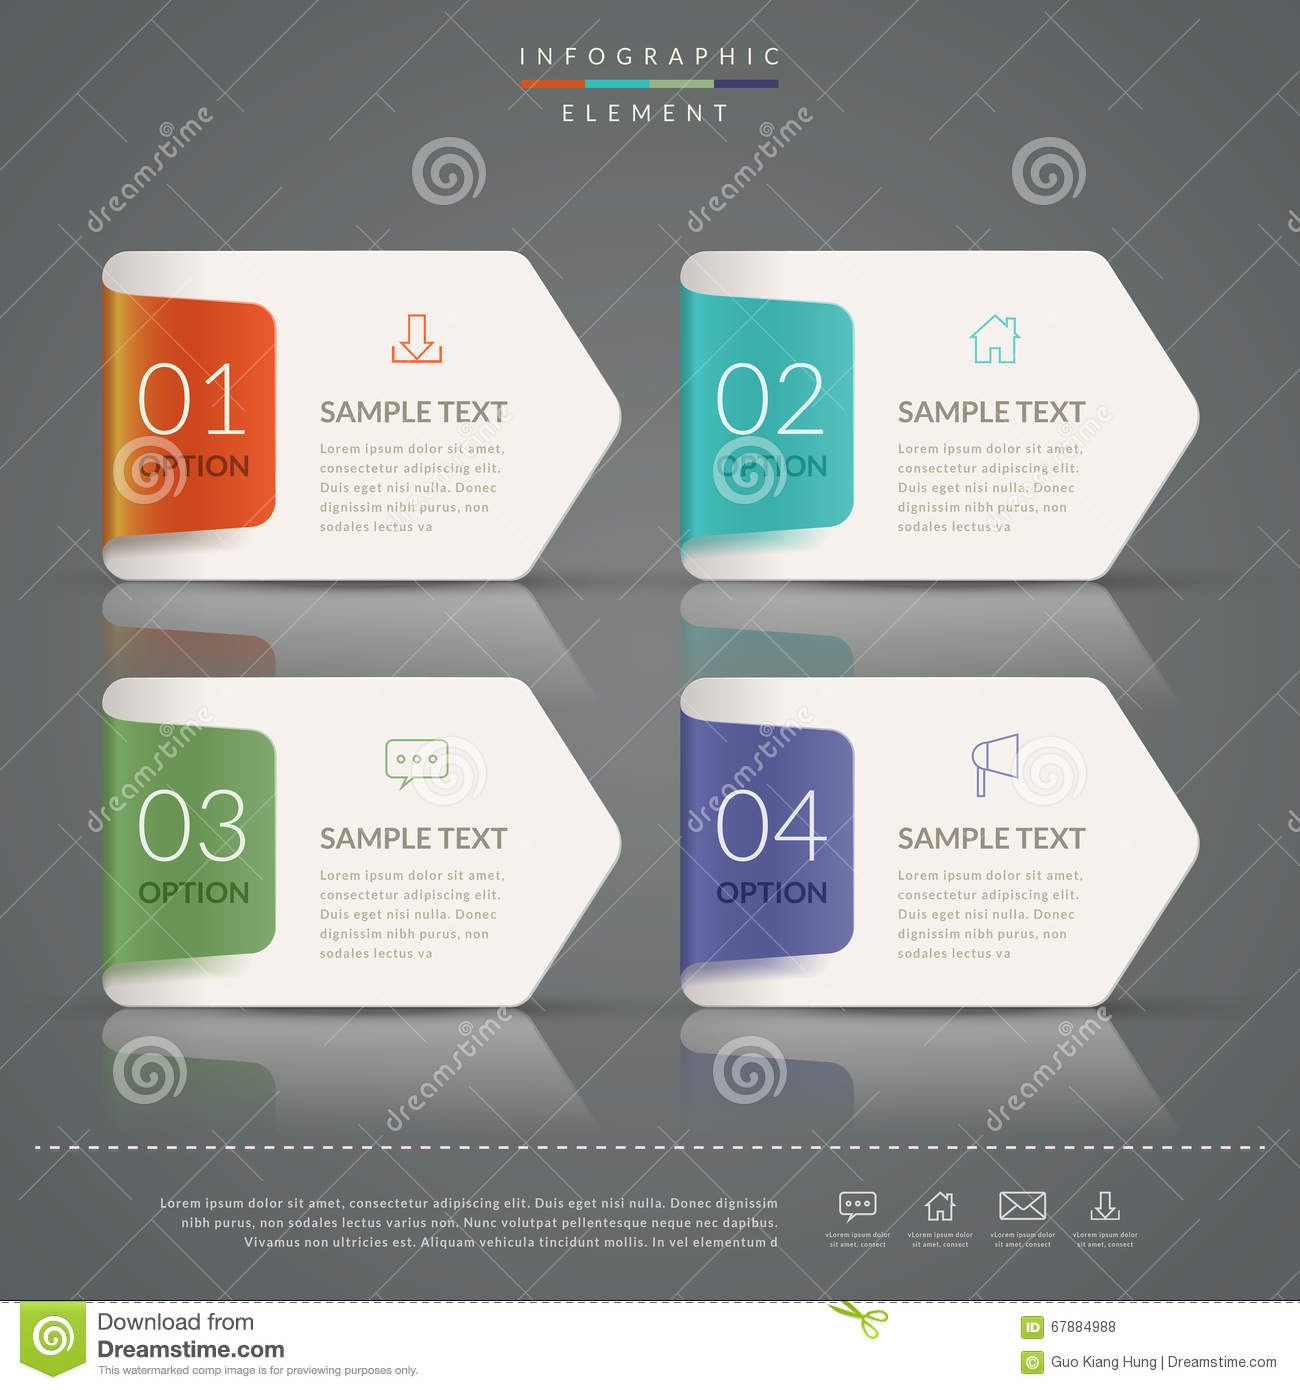 Simplicity infographic template